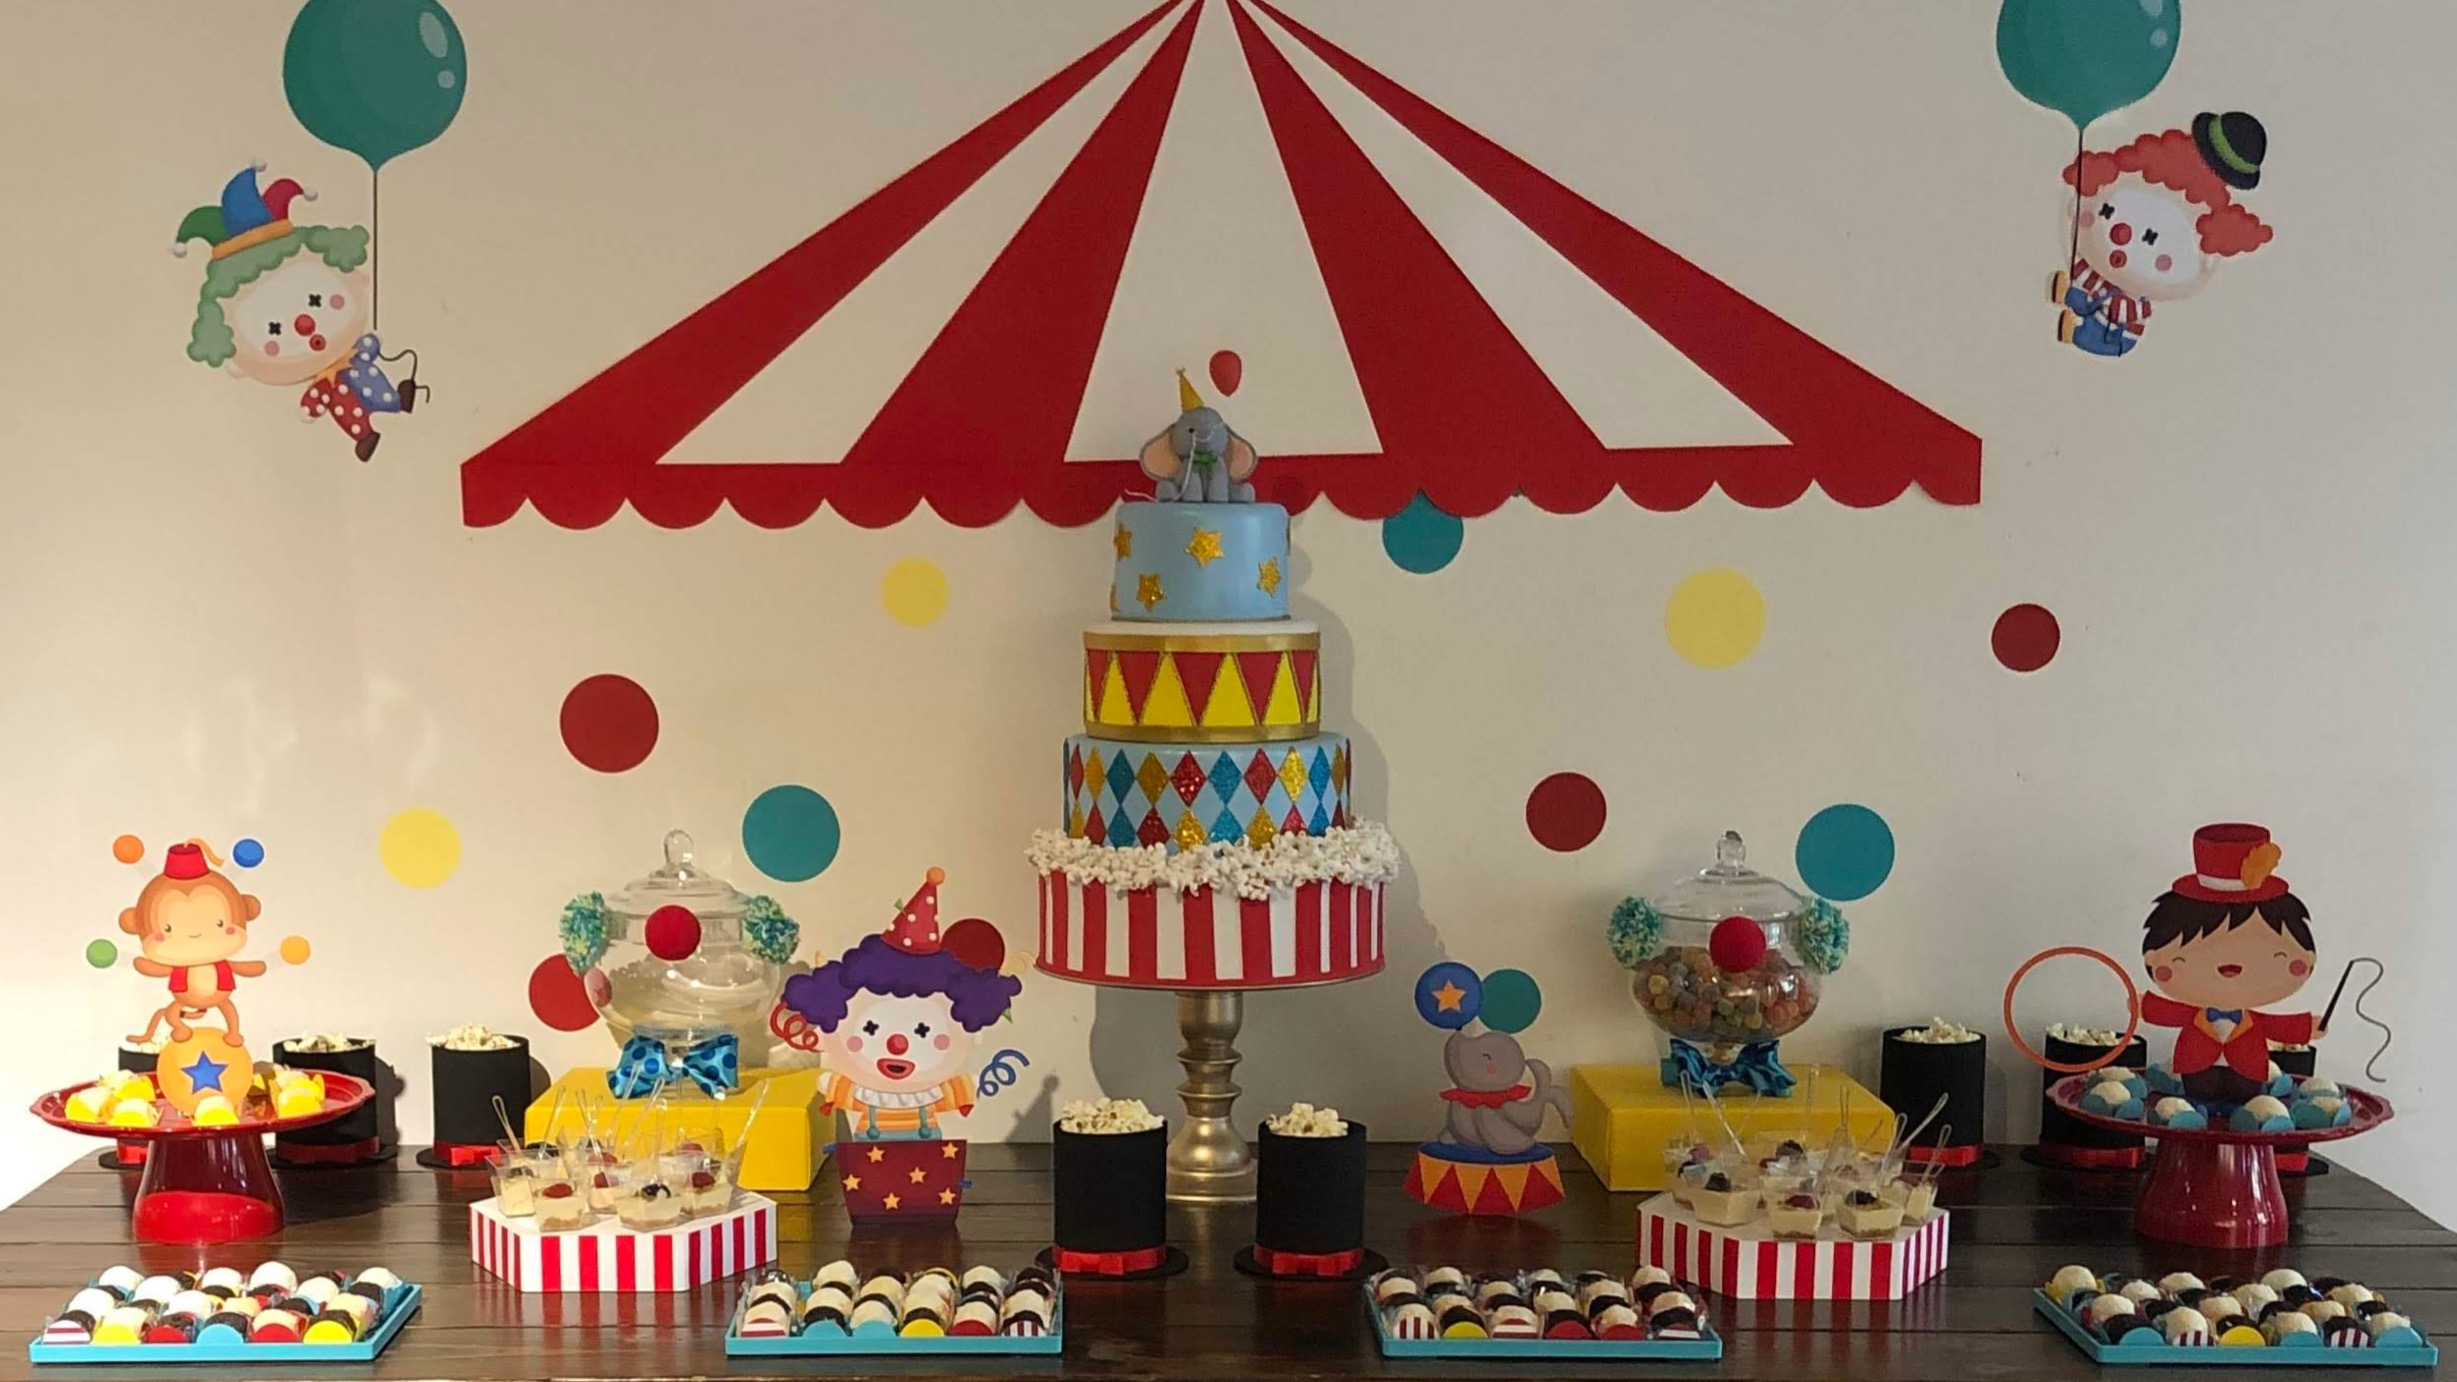 B-day Kids: Circus - Tx